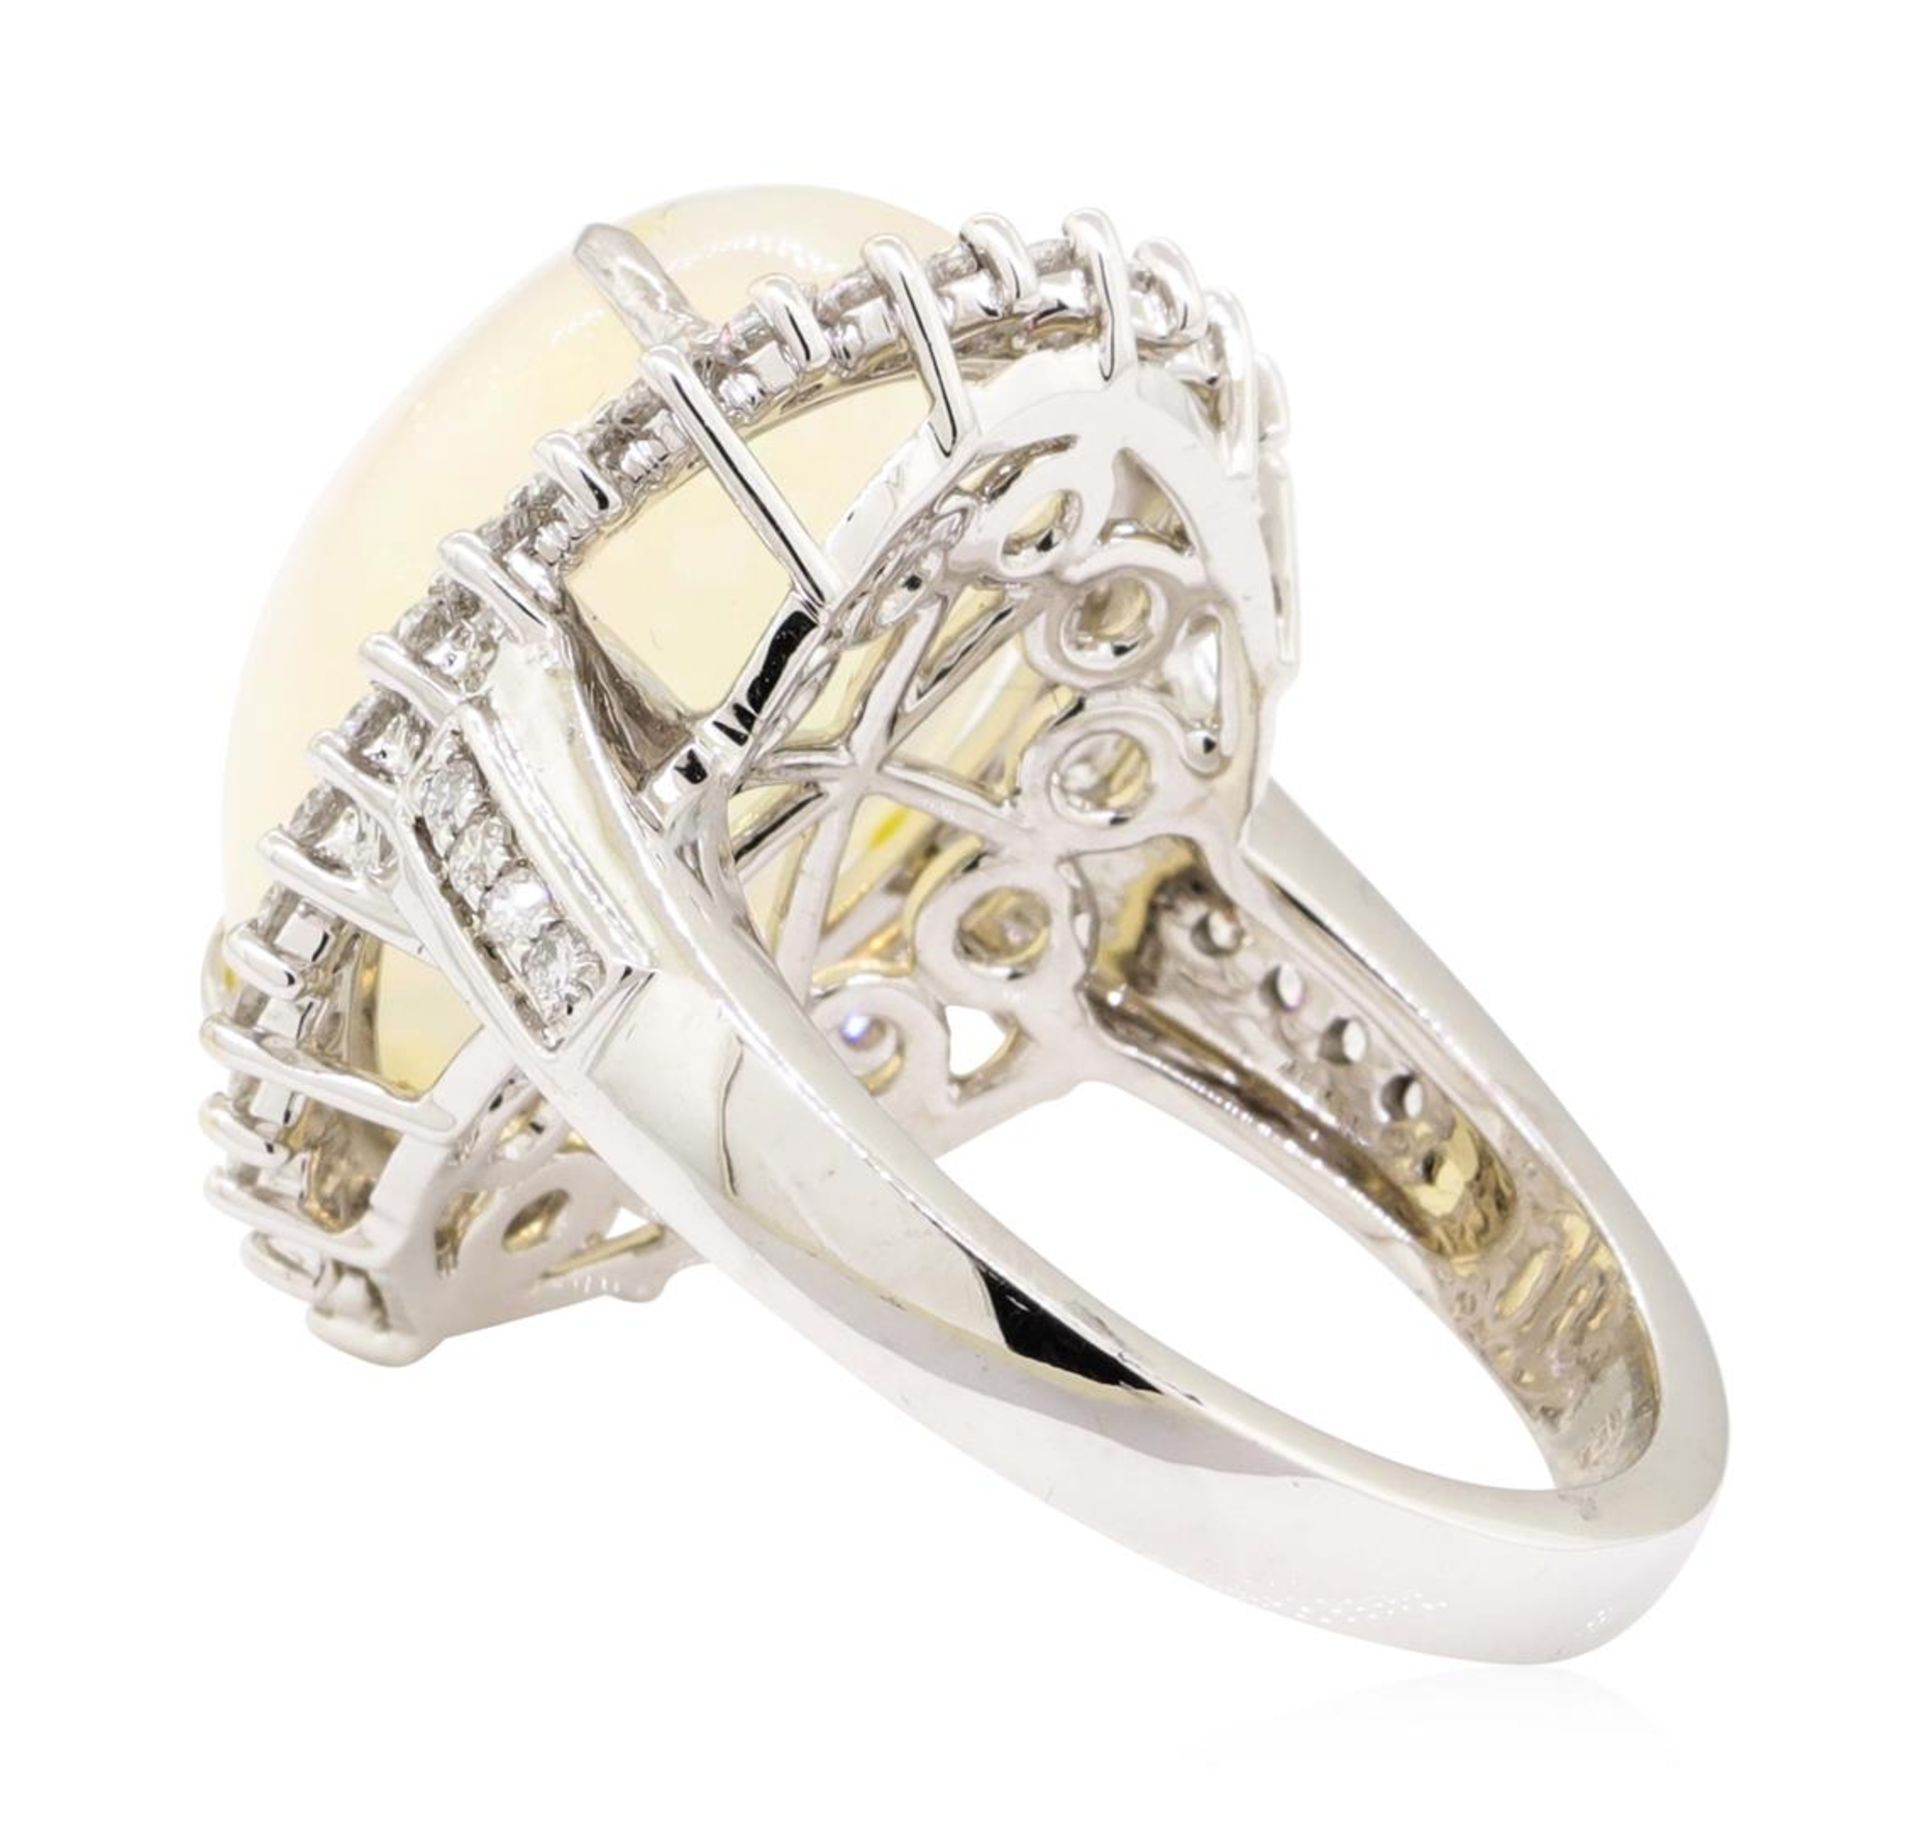 9.12 ctw Cabochon Pear Crystal Opal And Round Brilliant Cut Diamond Ring - 14KT - Image 3 of 5